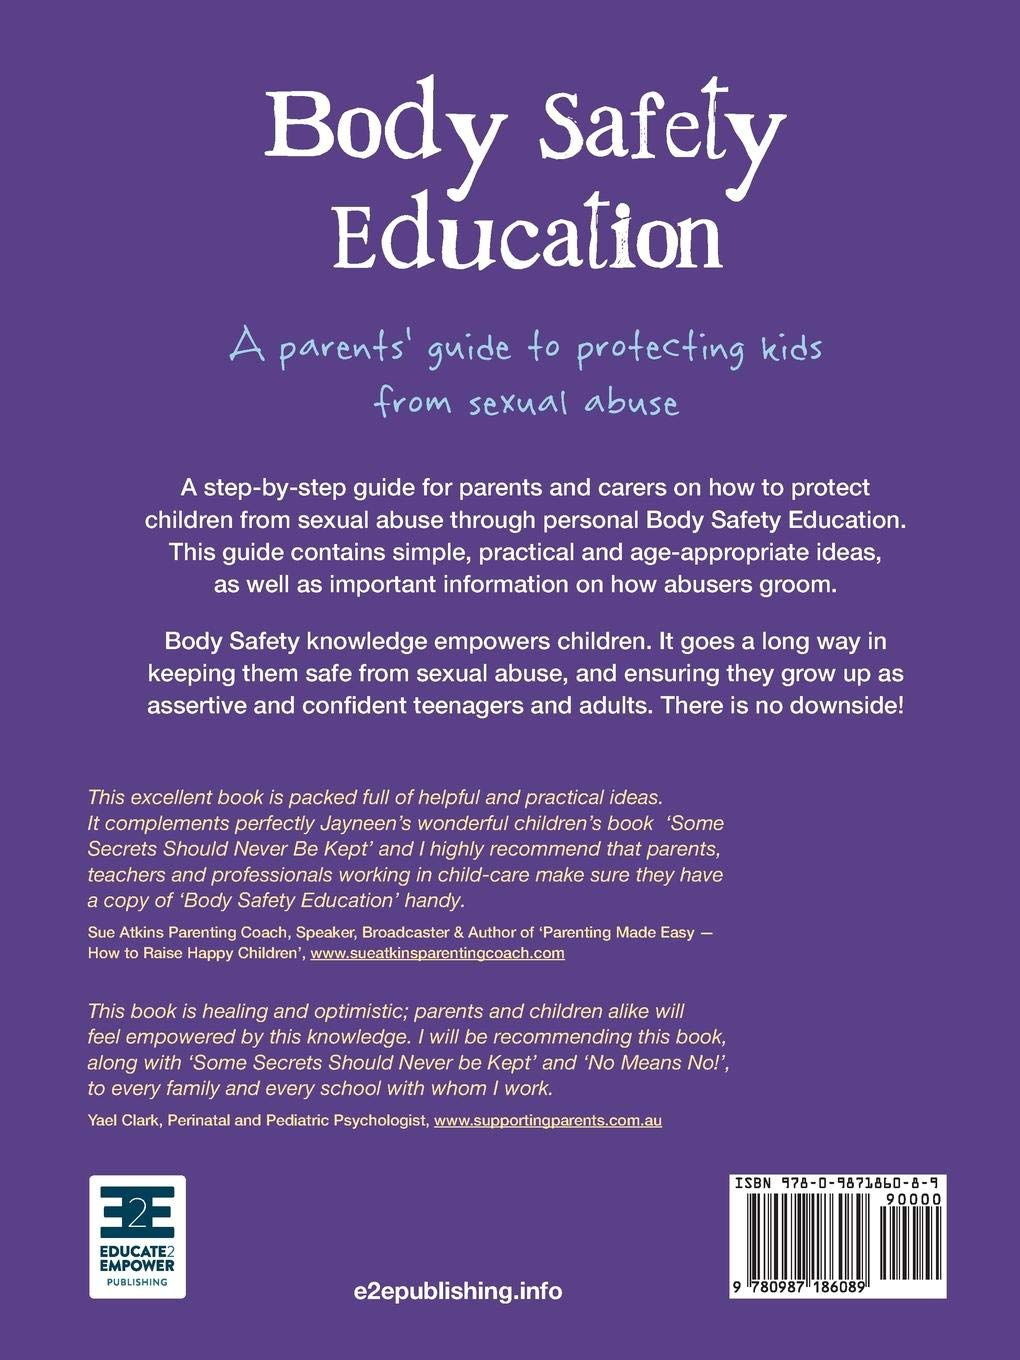 New Ways To Protect Kids From Abuse And >> Body Safety Education A Parents Guide To Protecting Kids From